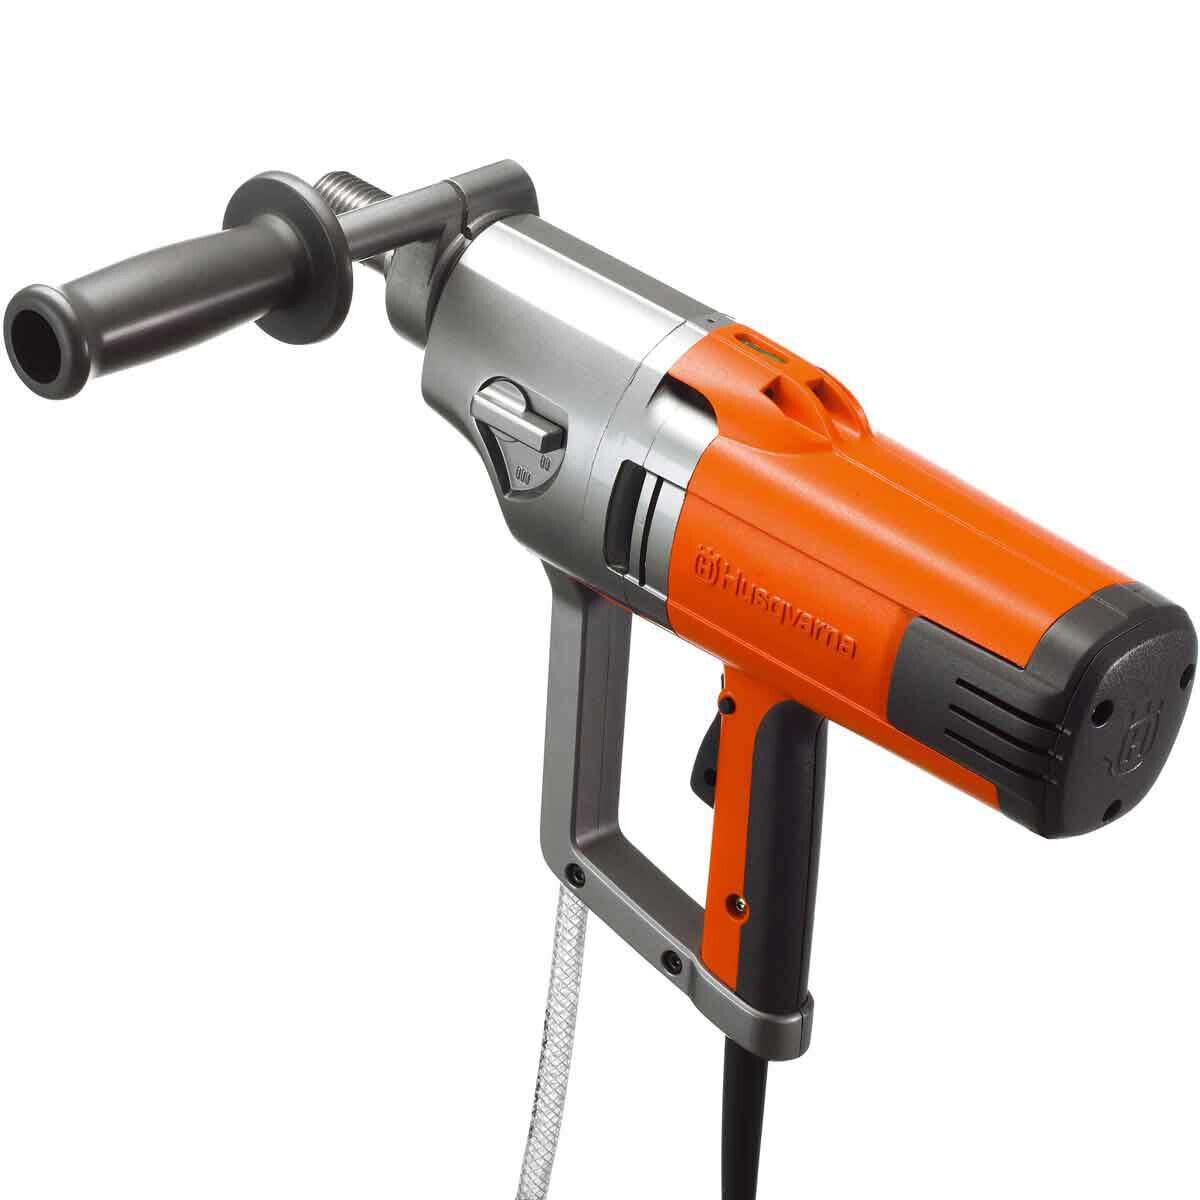 Husqvarna DM230 Electric Core Drill